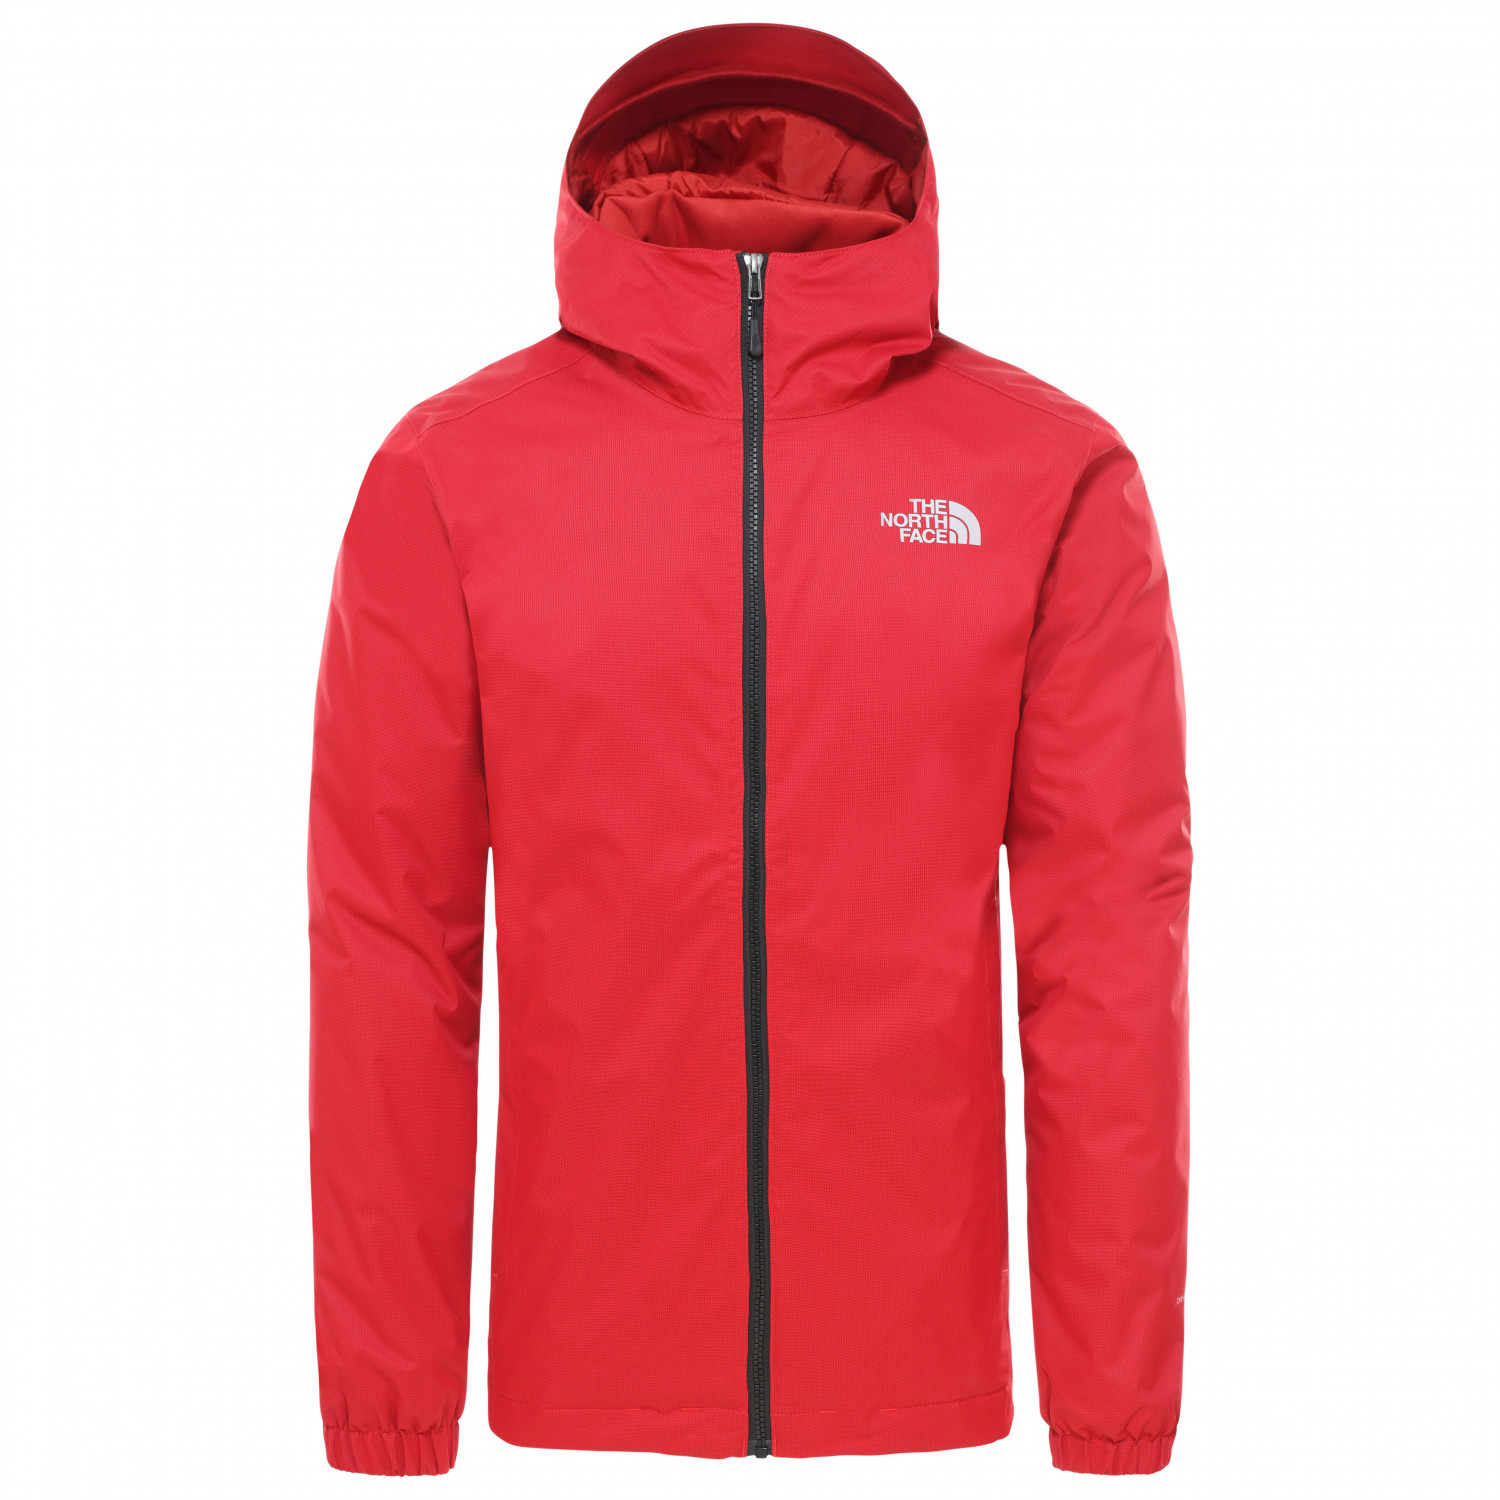 ffea31485 The North Face Quest Insulated Jacket - Winter Jacket Men's | Free ...